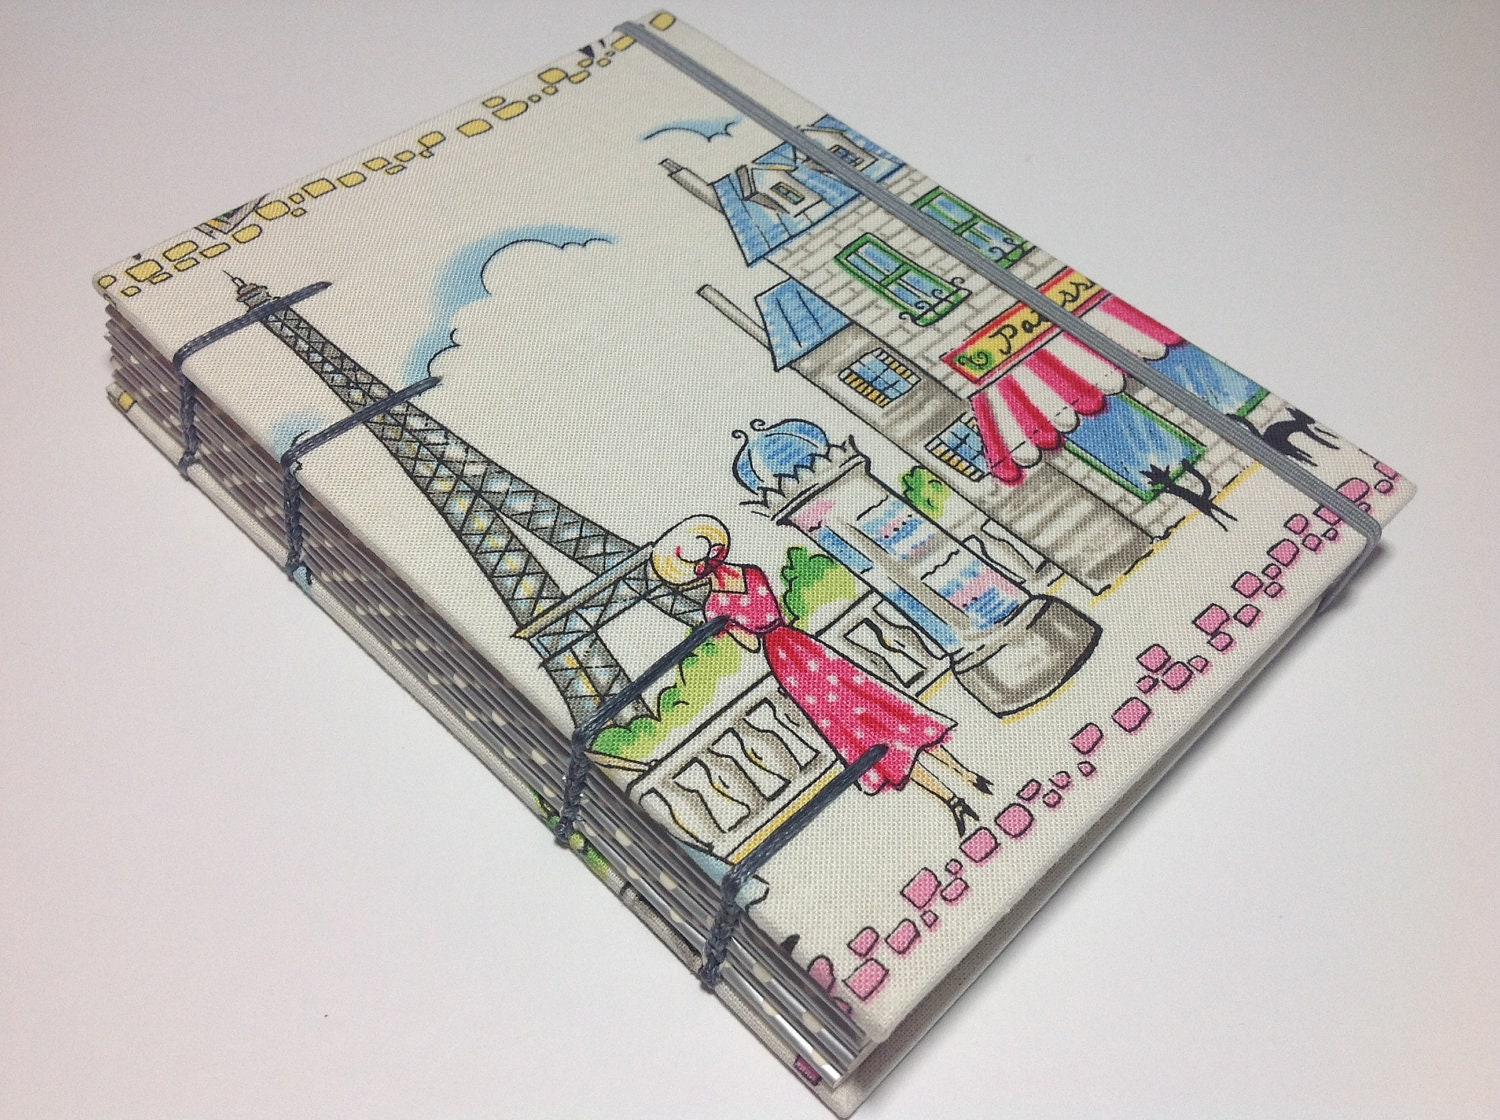 A day in Paris - Fabric Journal Notebook - Handmade - Coptic Stitched - Travel Holiday Vacation Journey - BBhandmades